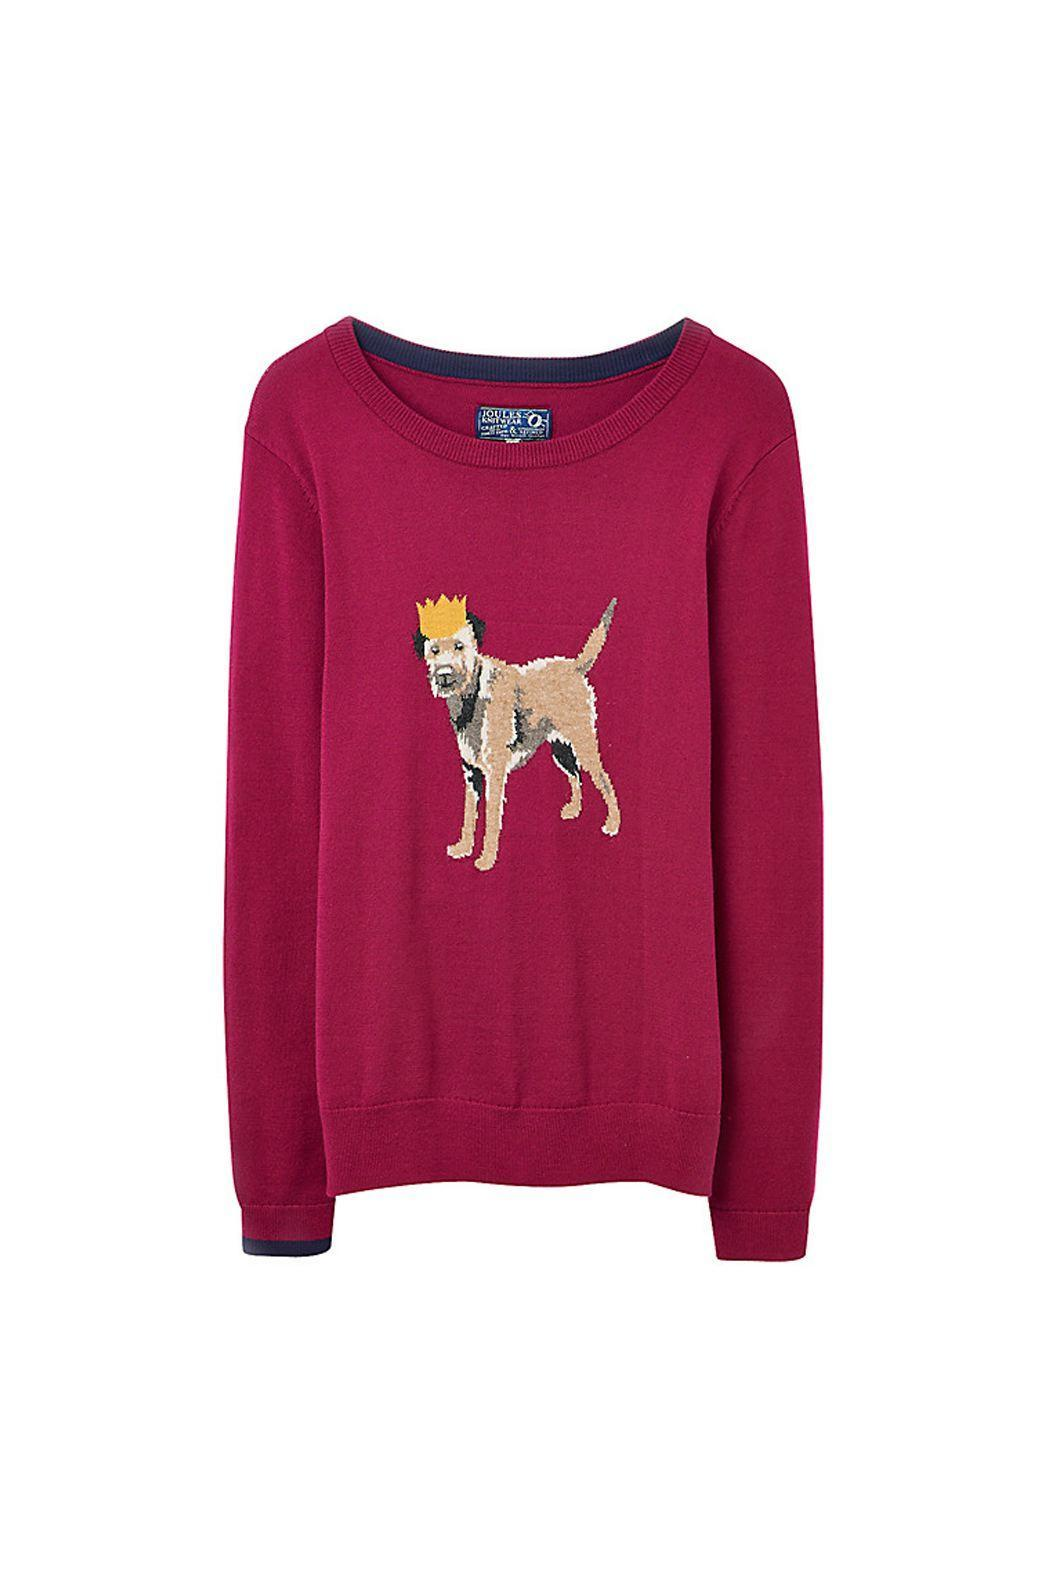 Pink Poodle Boutique Border Terrier Jumper From Glasgow By